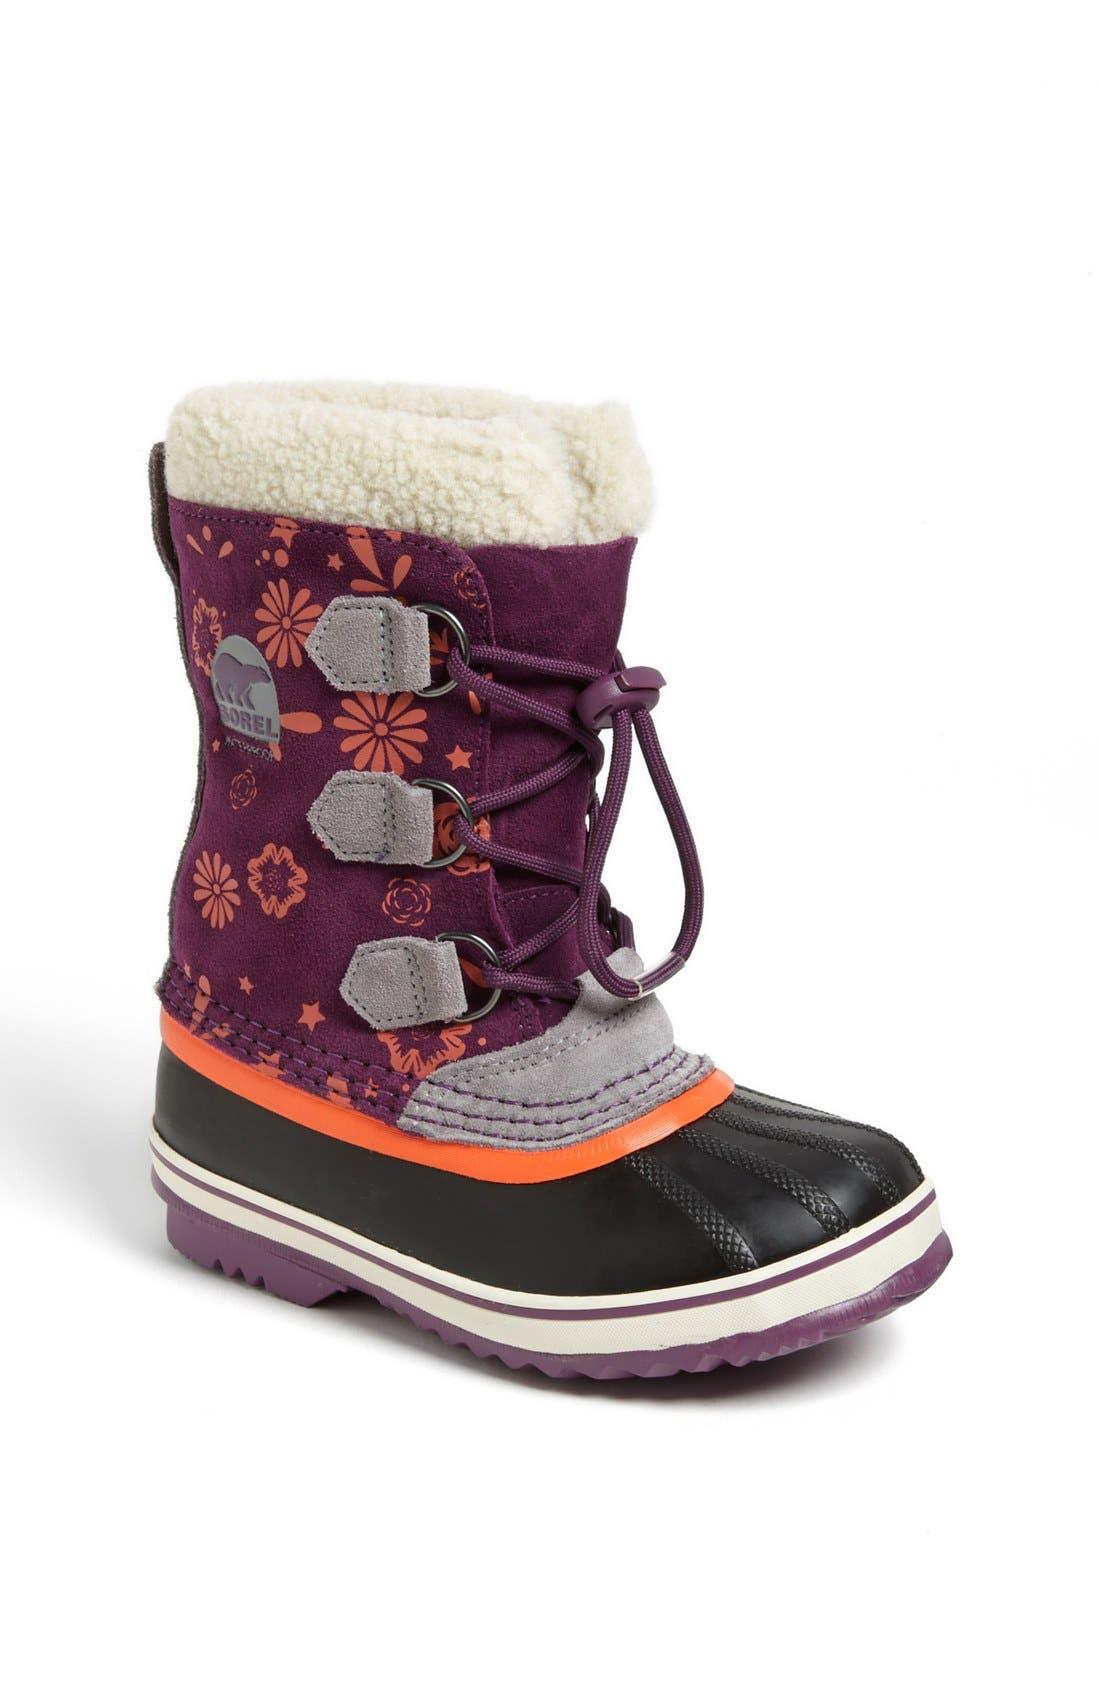 Main Image - SOREL '1964 PAC™ - Graphic' Snow Boot (Toddler, Little Kid & Big Kid)